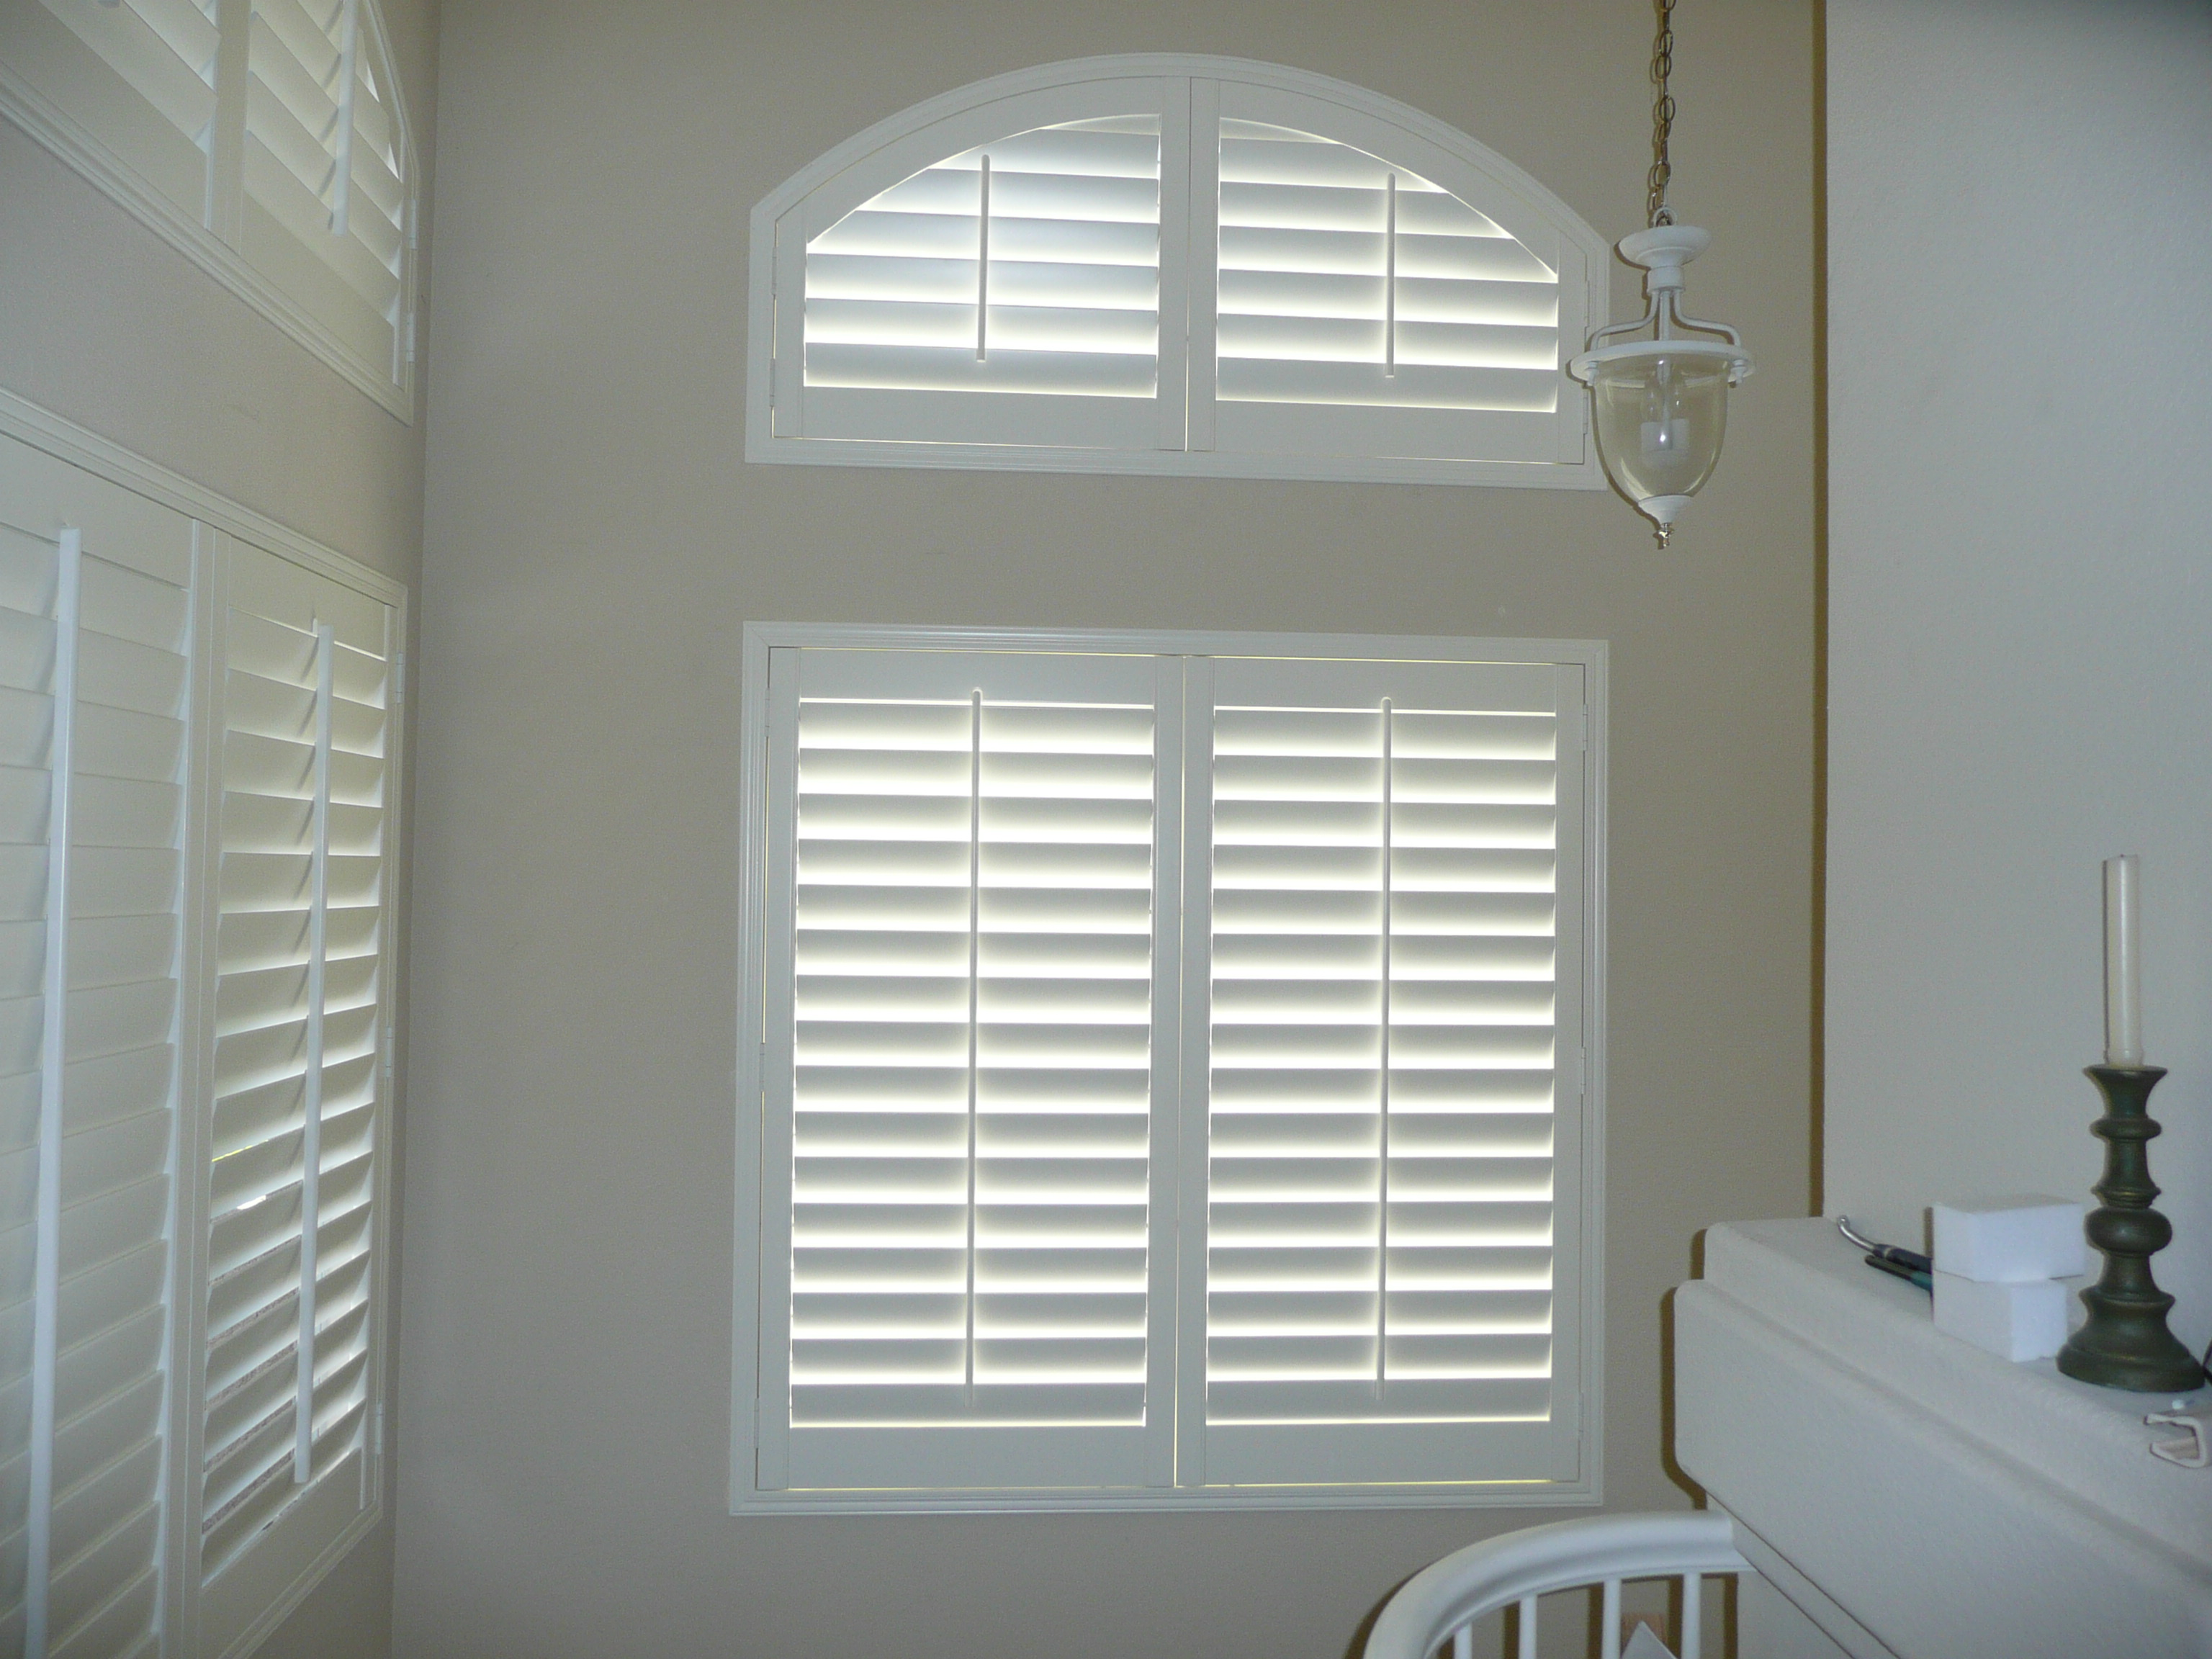 1000 images about shutter shots on pinterest for Window shutters